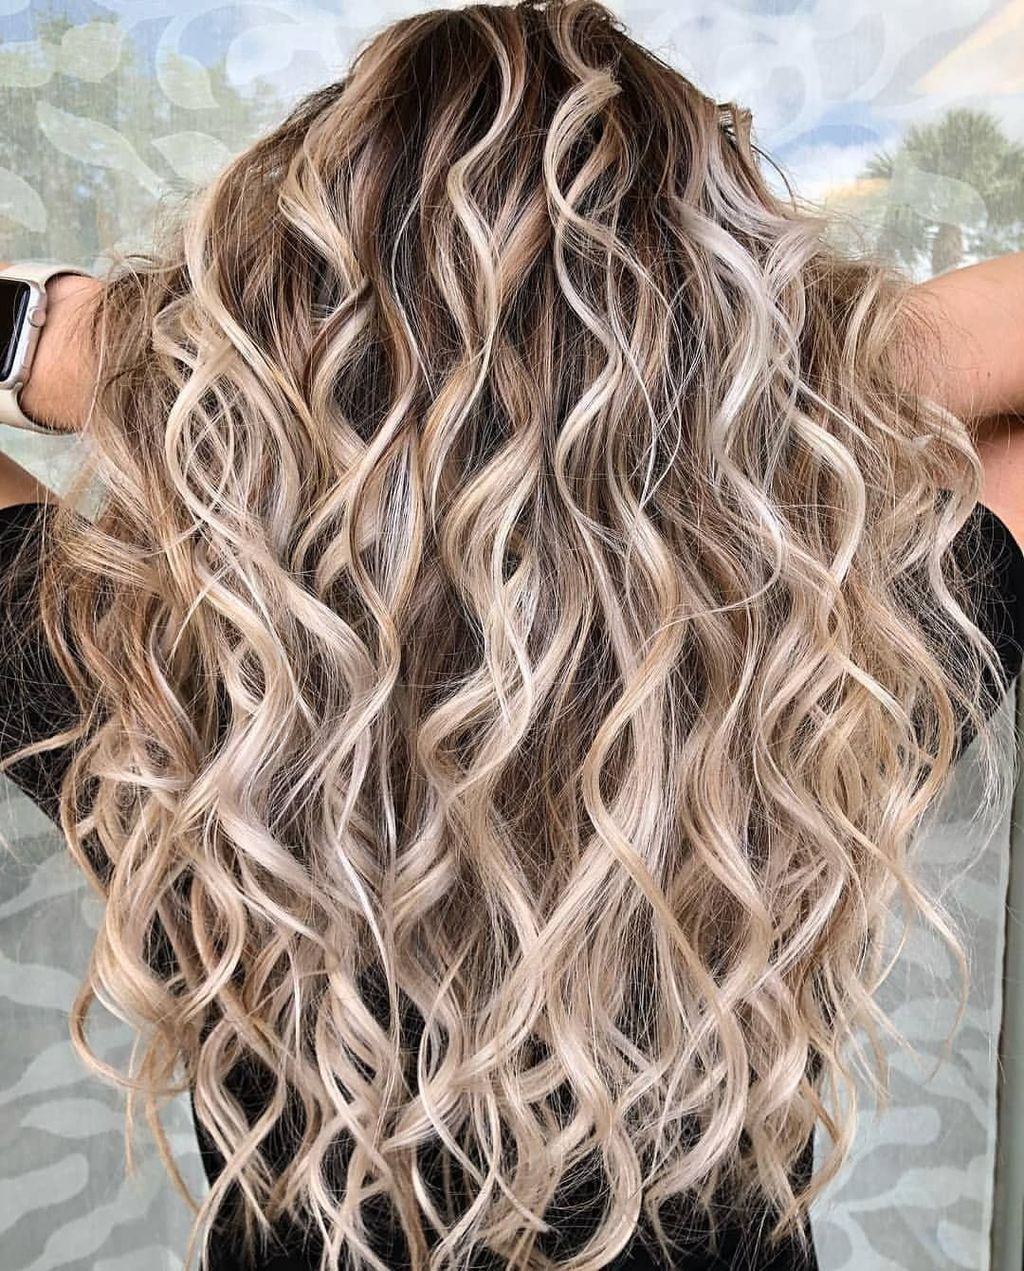 41 Fashionable Hair Color Ideas For Winter 2019 Addicfashion Hot Hair Styles Brown Hair With Blonde Highlights Long Hair Styles